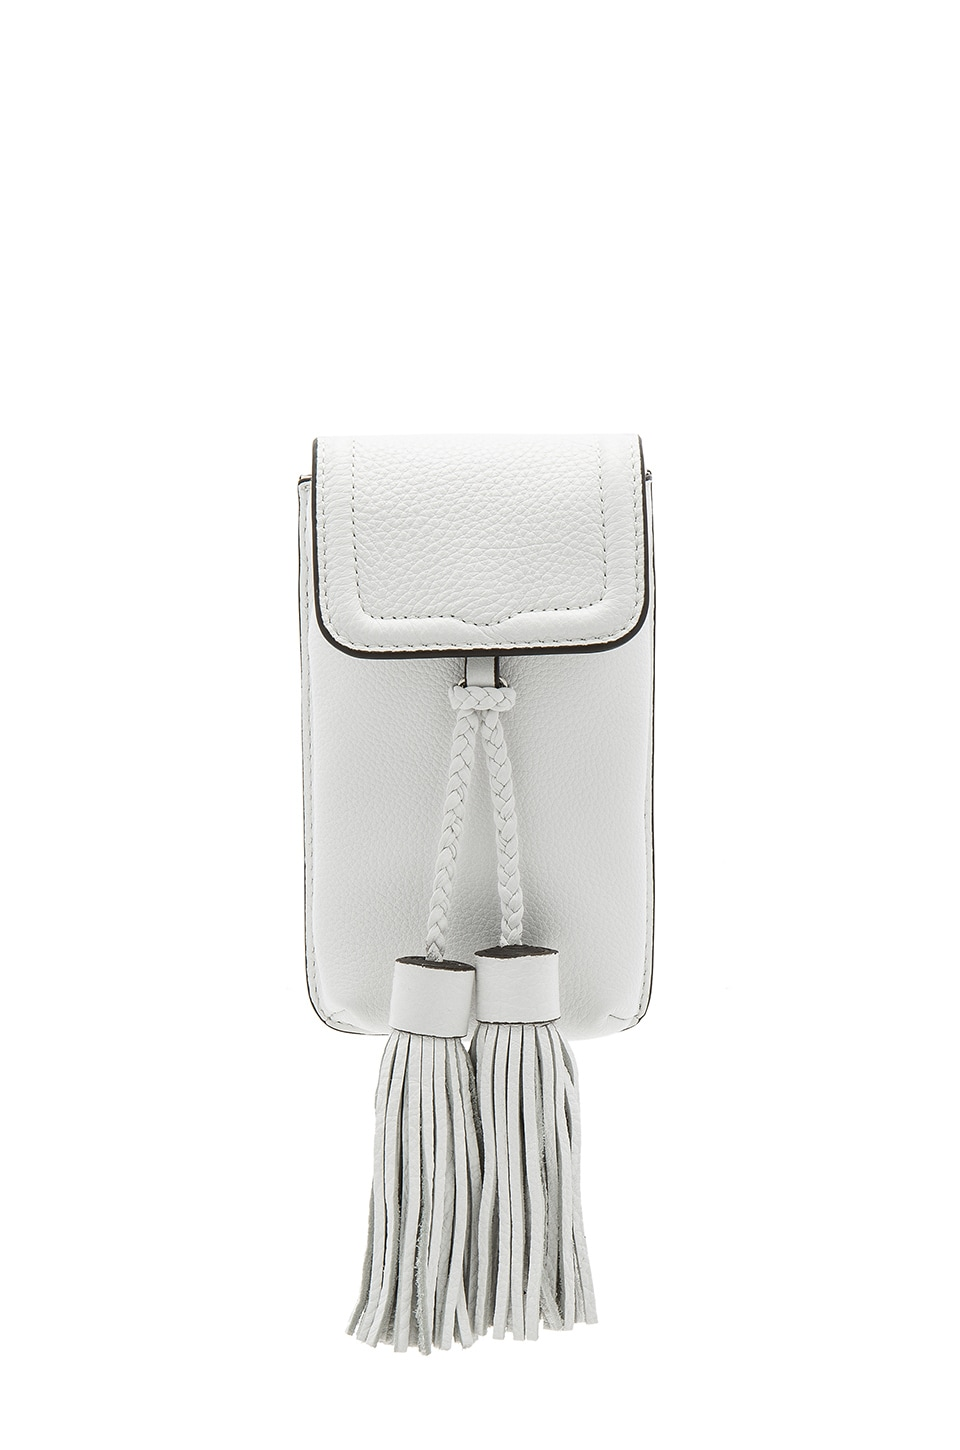 Rebecca Minkoff Isobel Phone Crossbody in Optic White